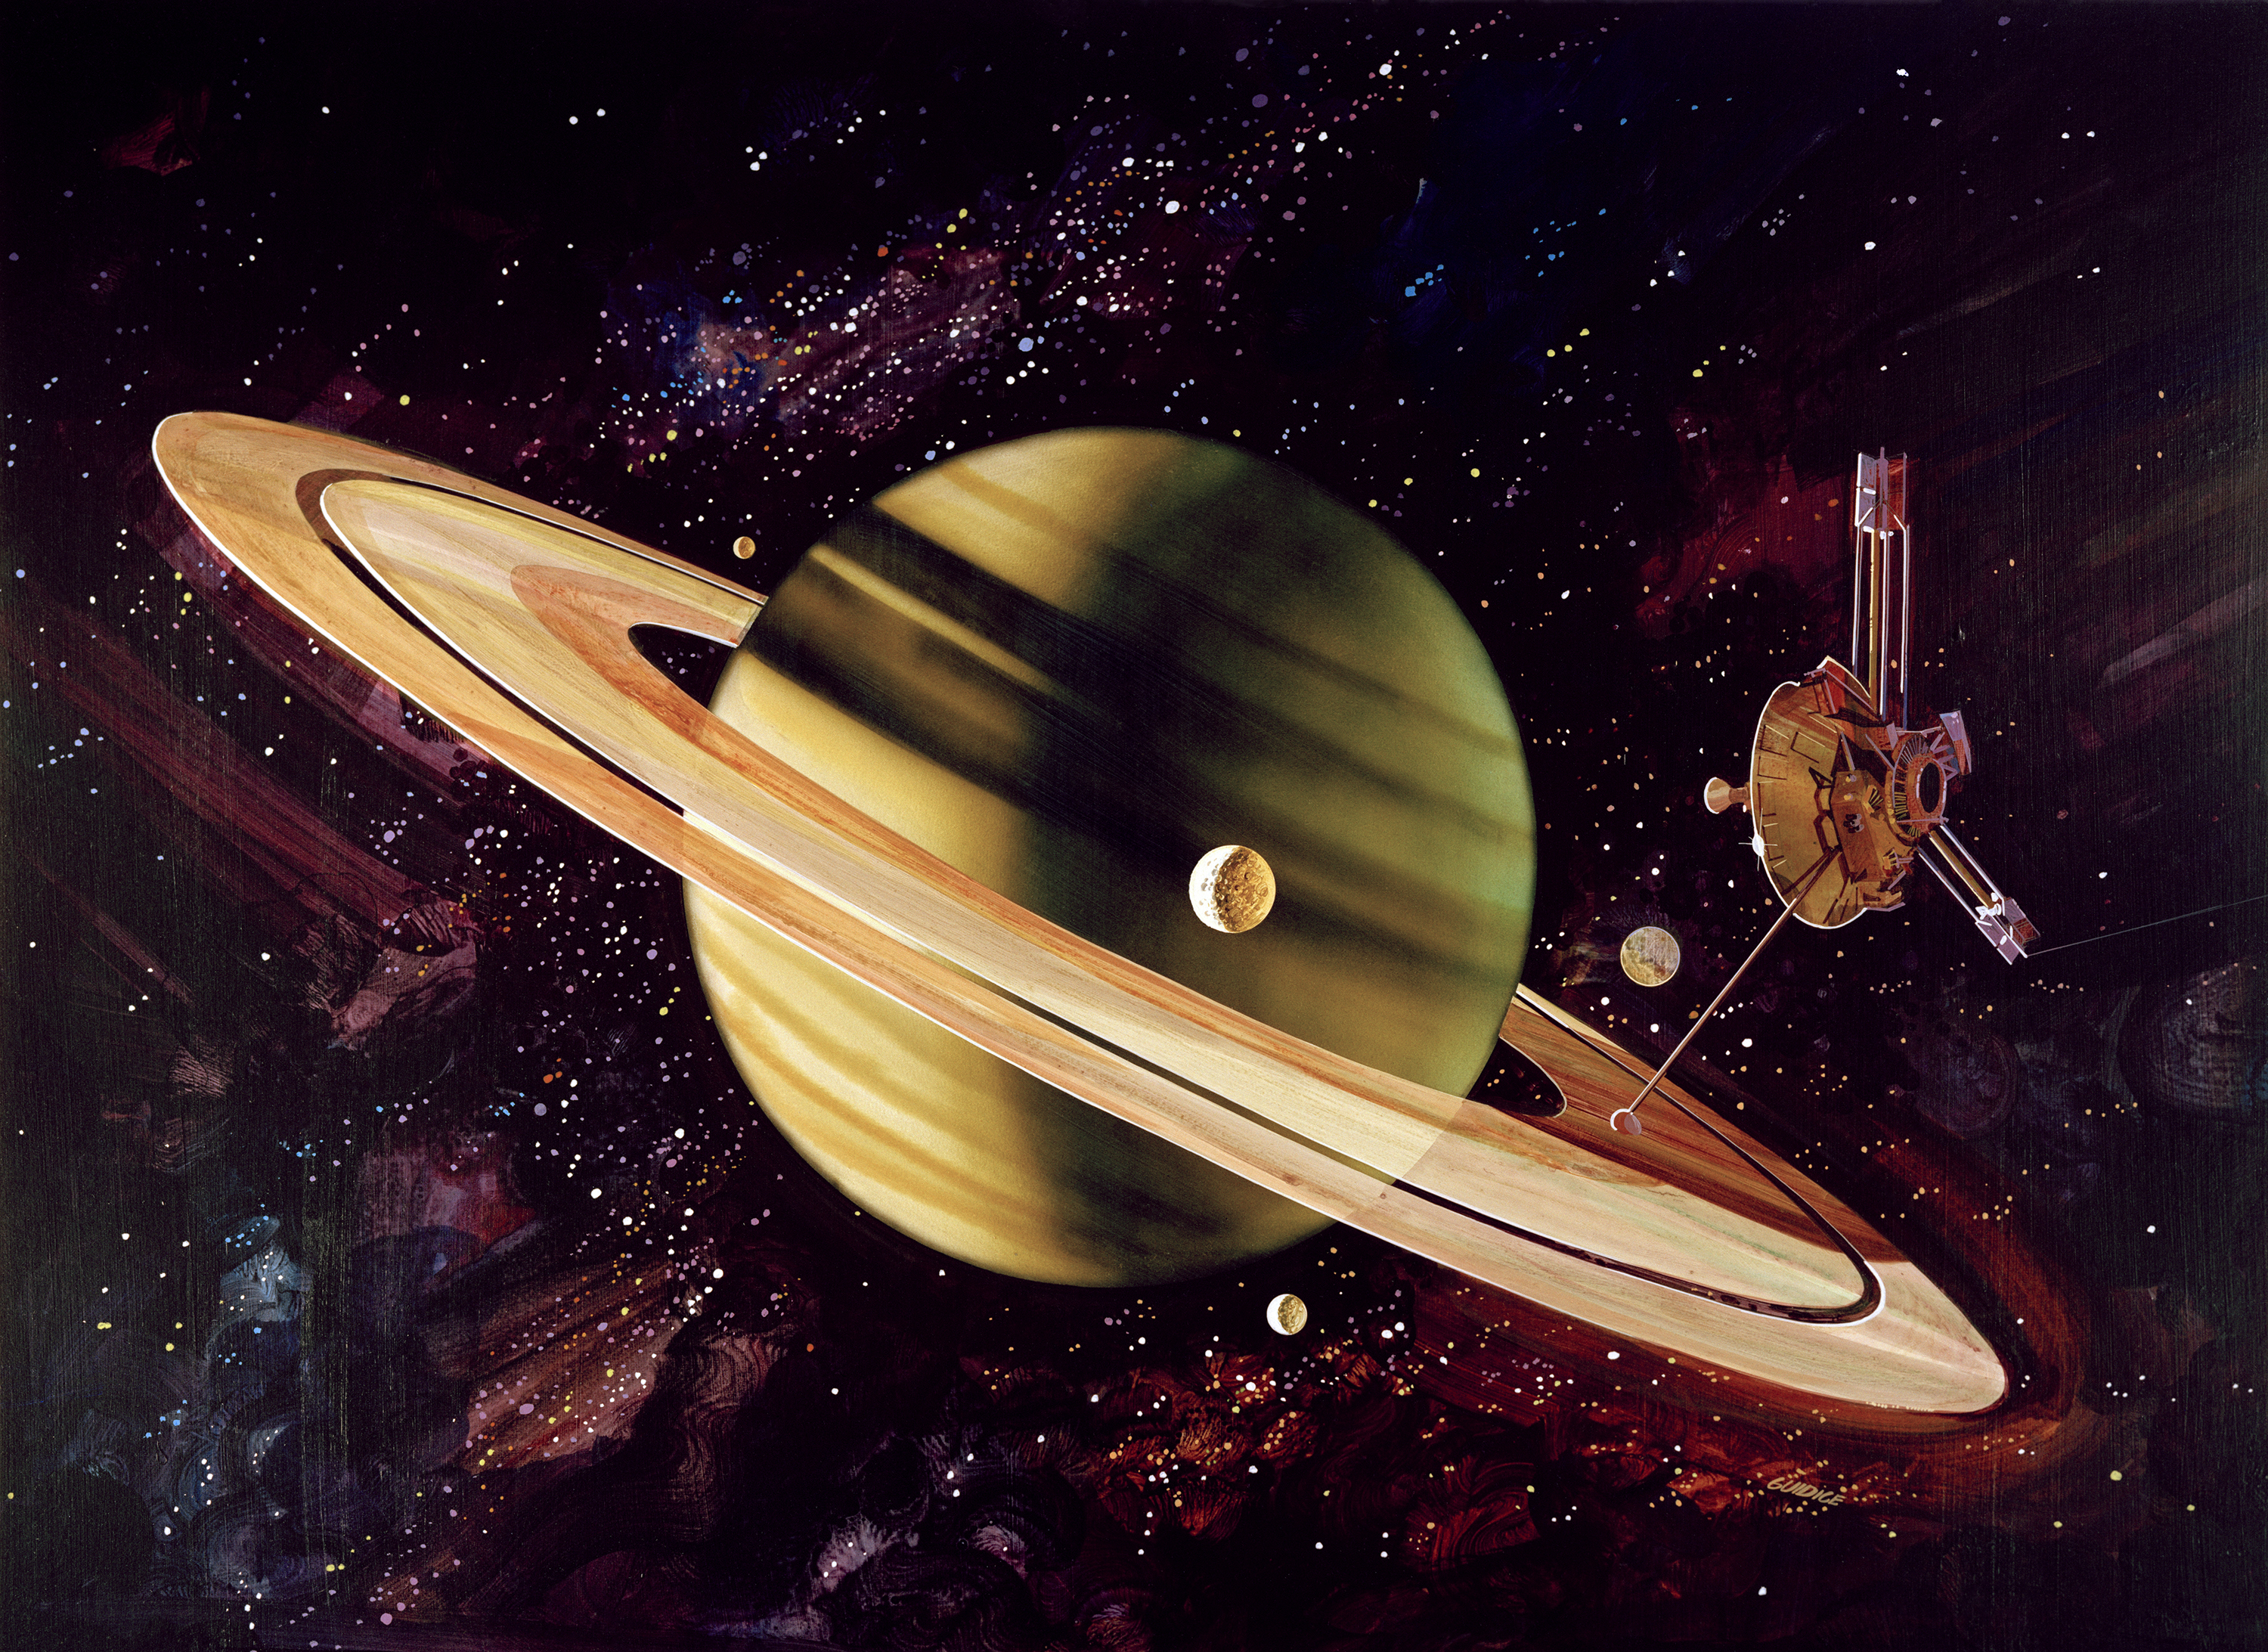 45 Years Ago Pioneer 11 Launched In Flyby Course With